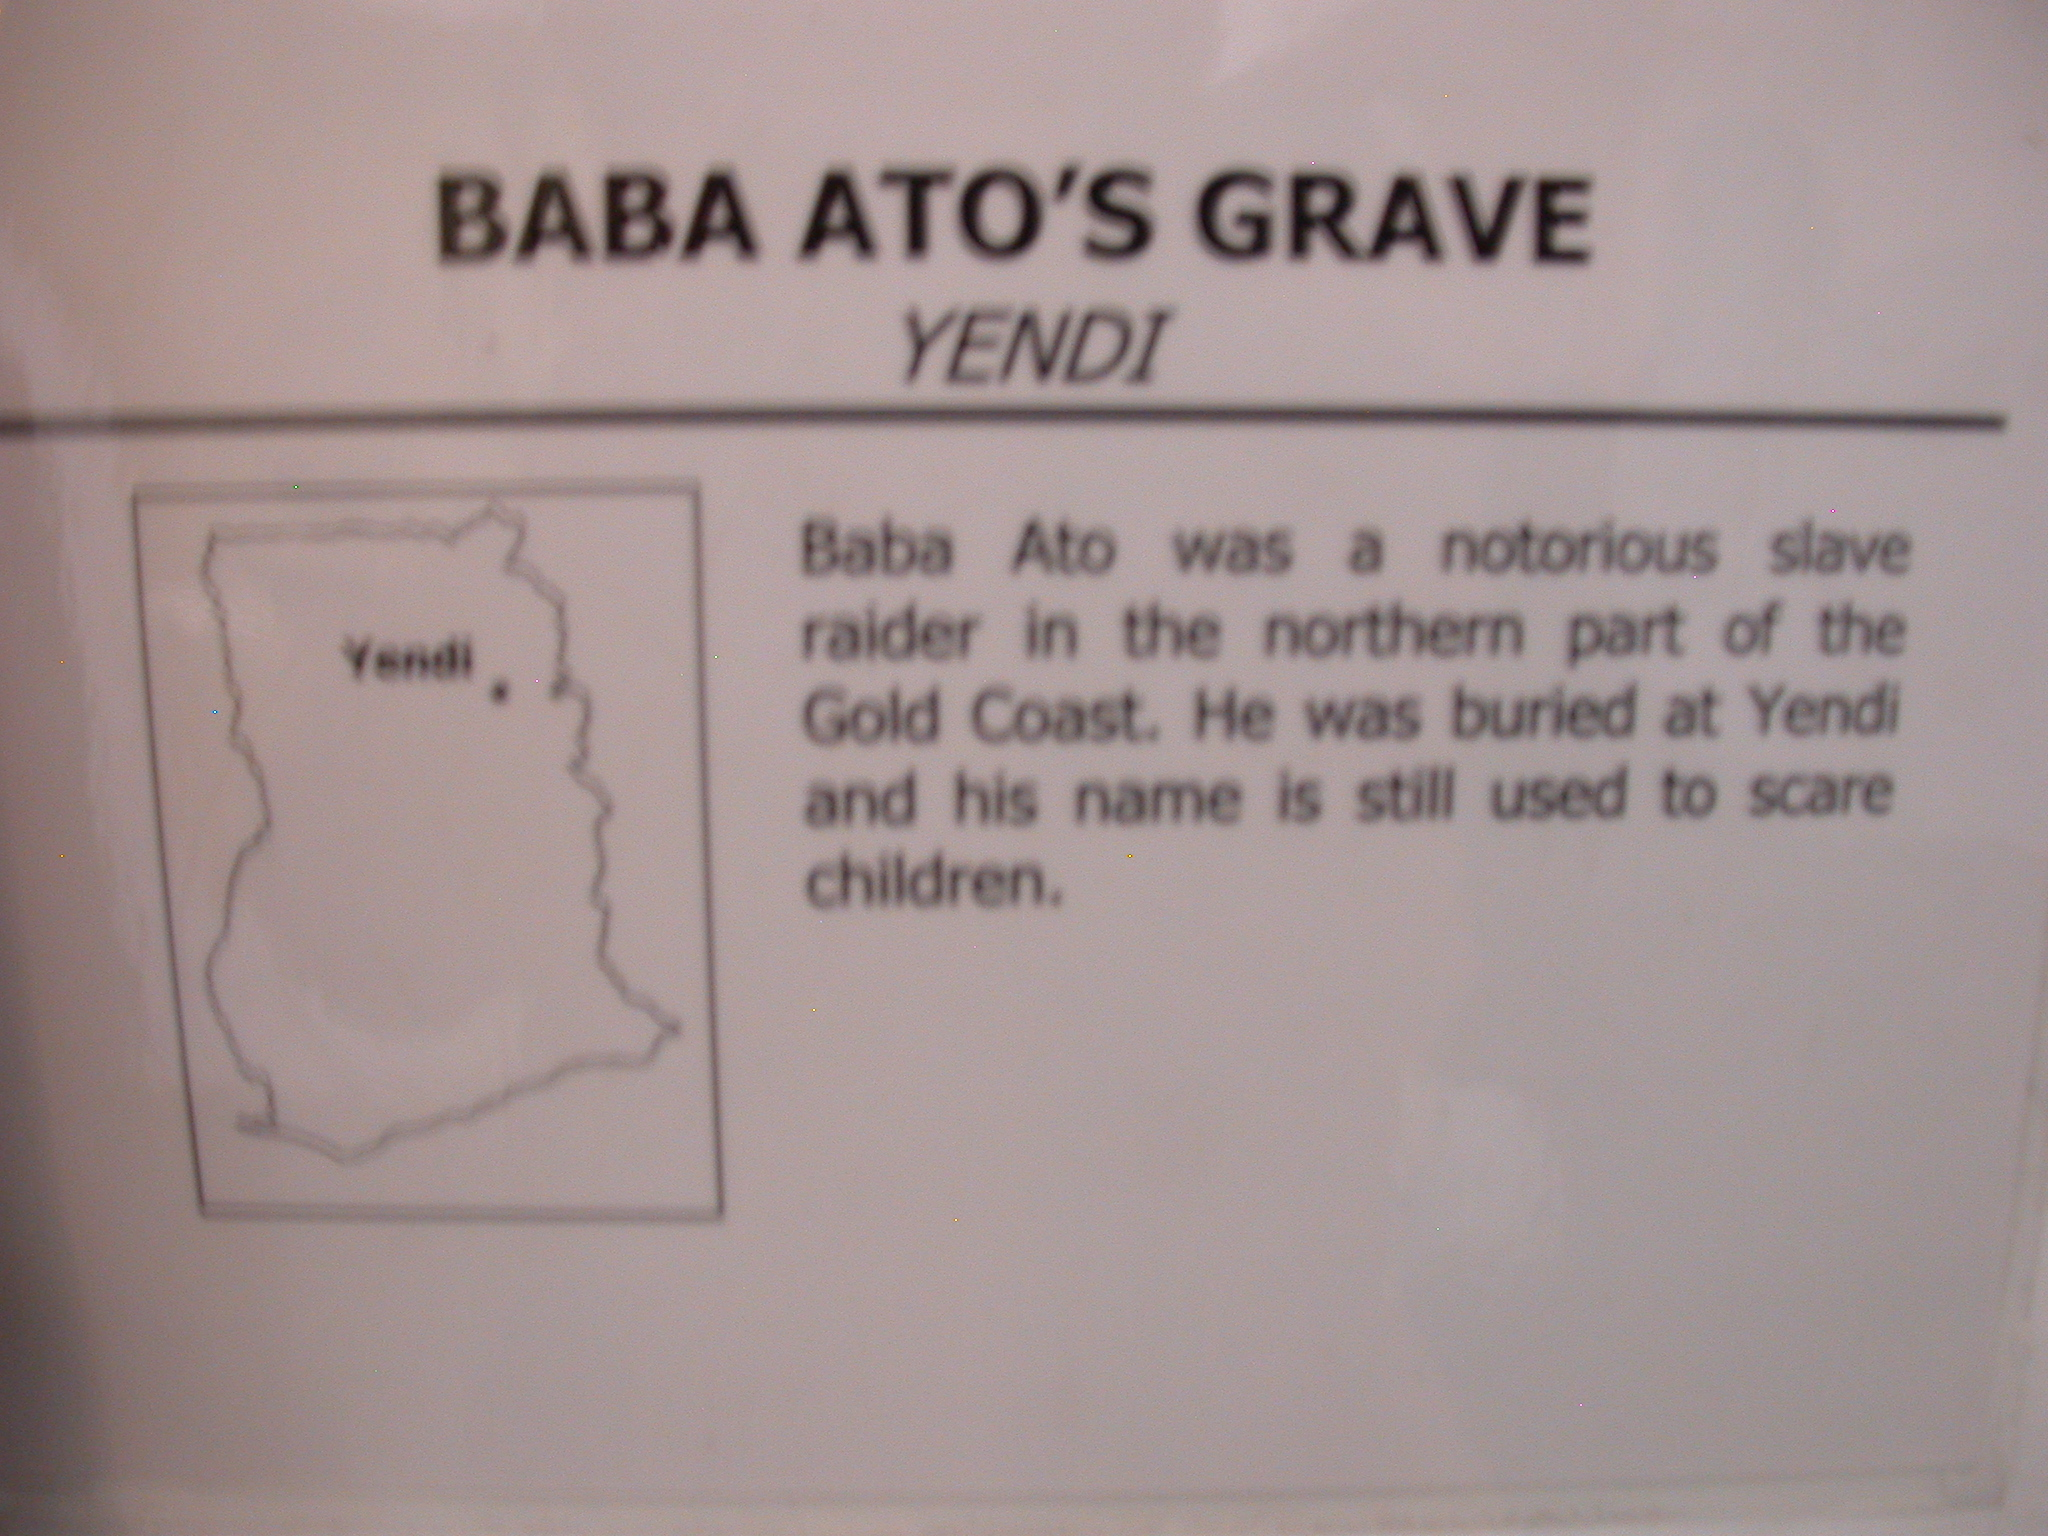 Label for Picture of Grave of Notorious Slave Raider Babo Ato, National Museum, Accra, Ghana